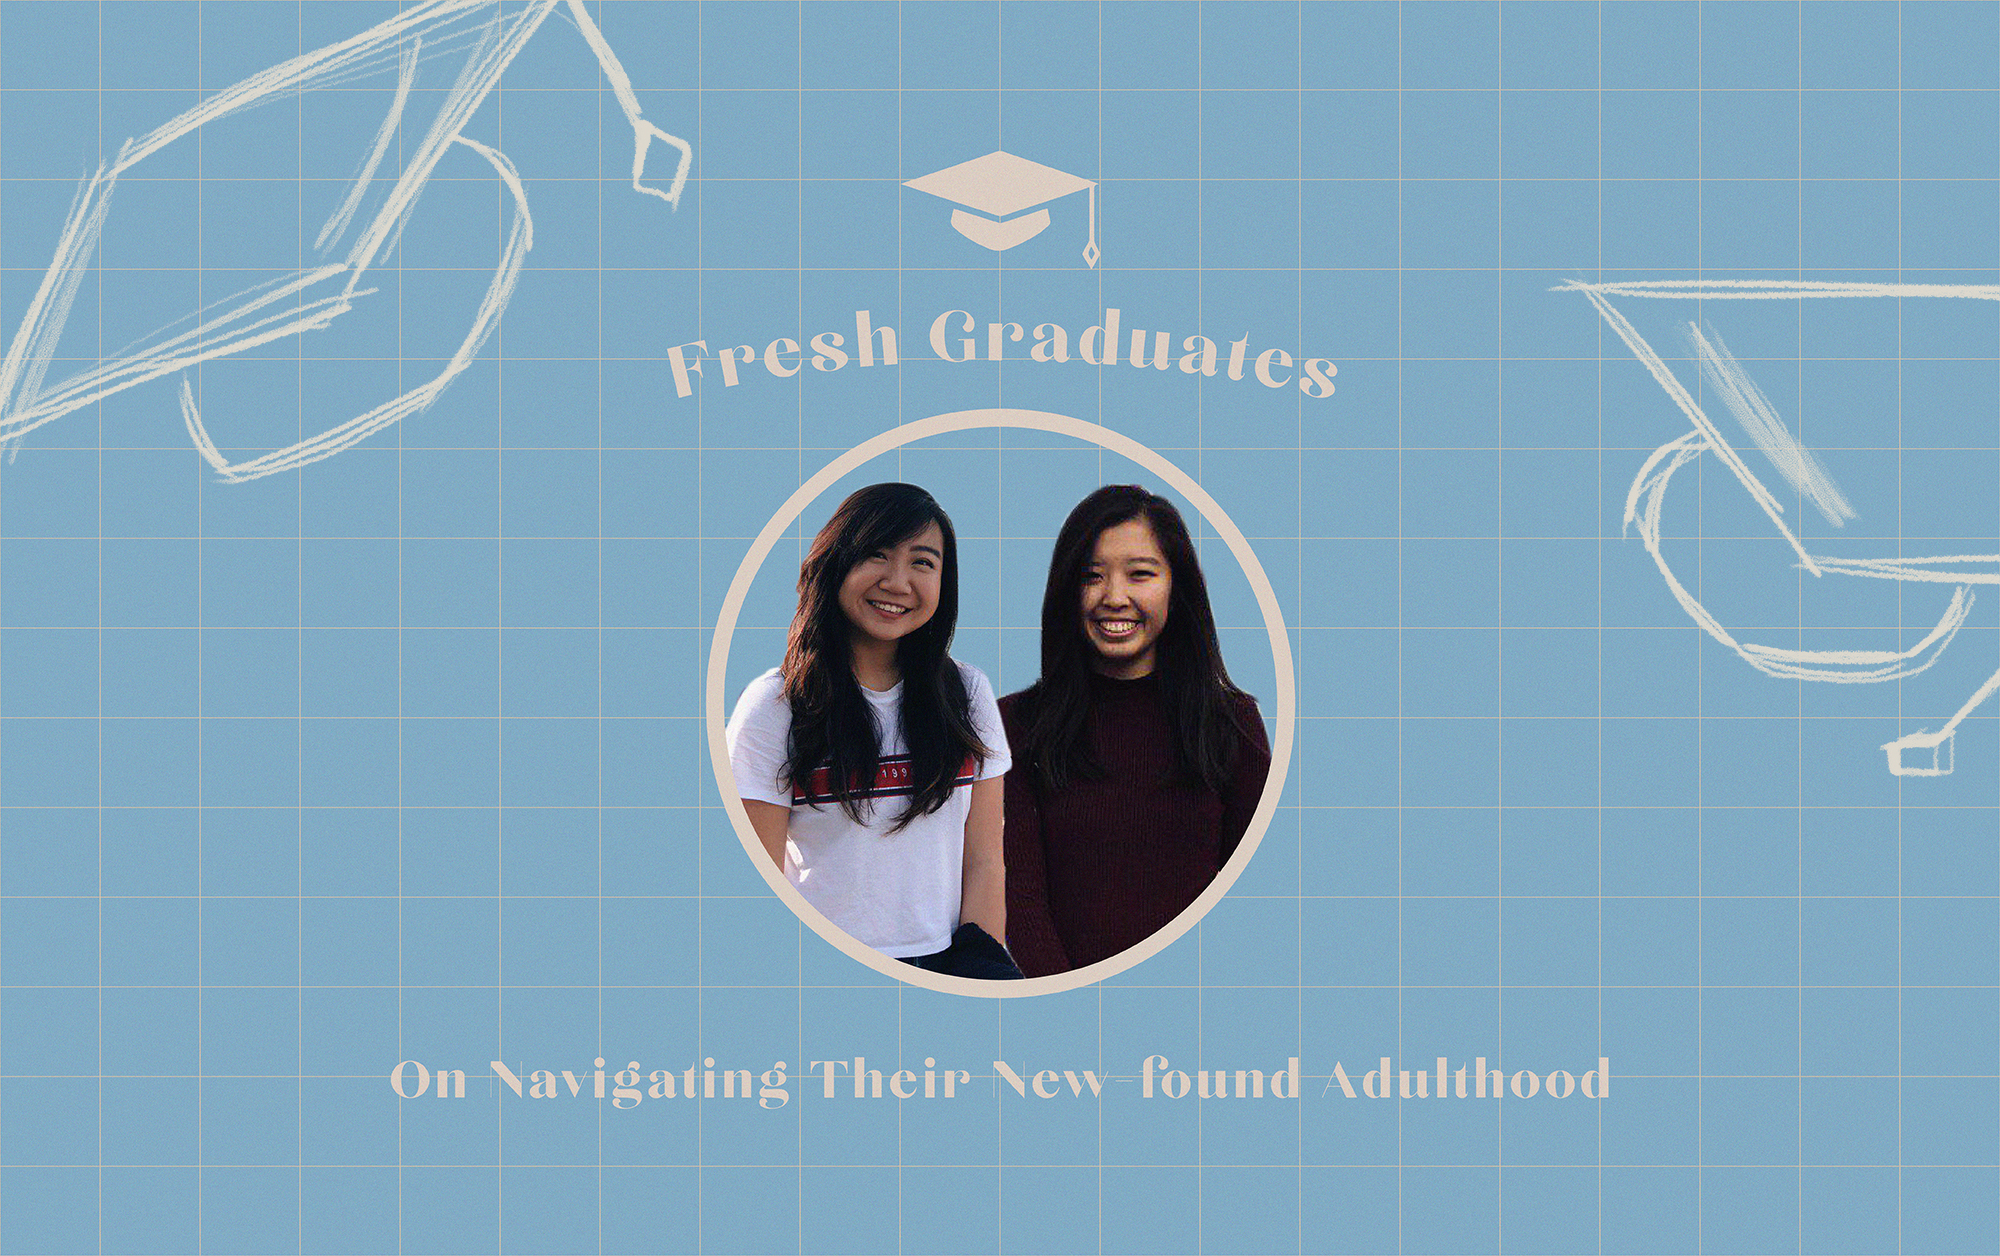 6 Fresh Graduates On Navigating Their New-found Adulthood